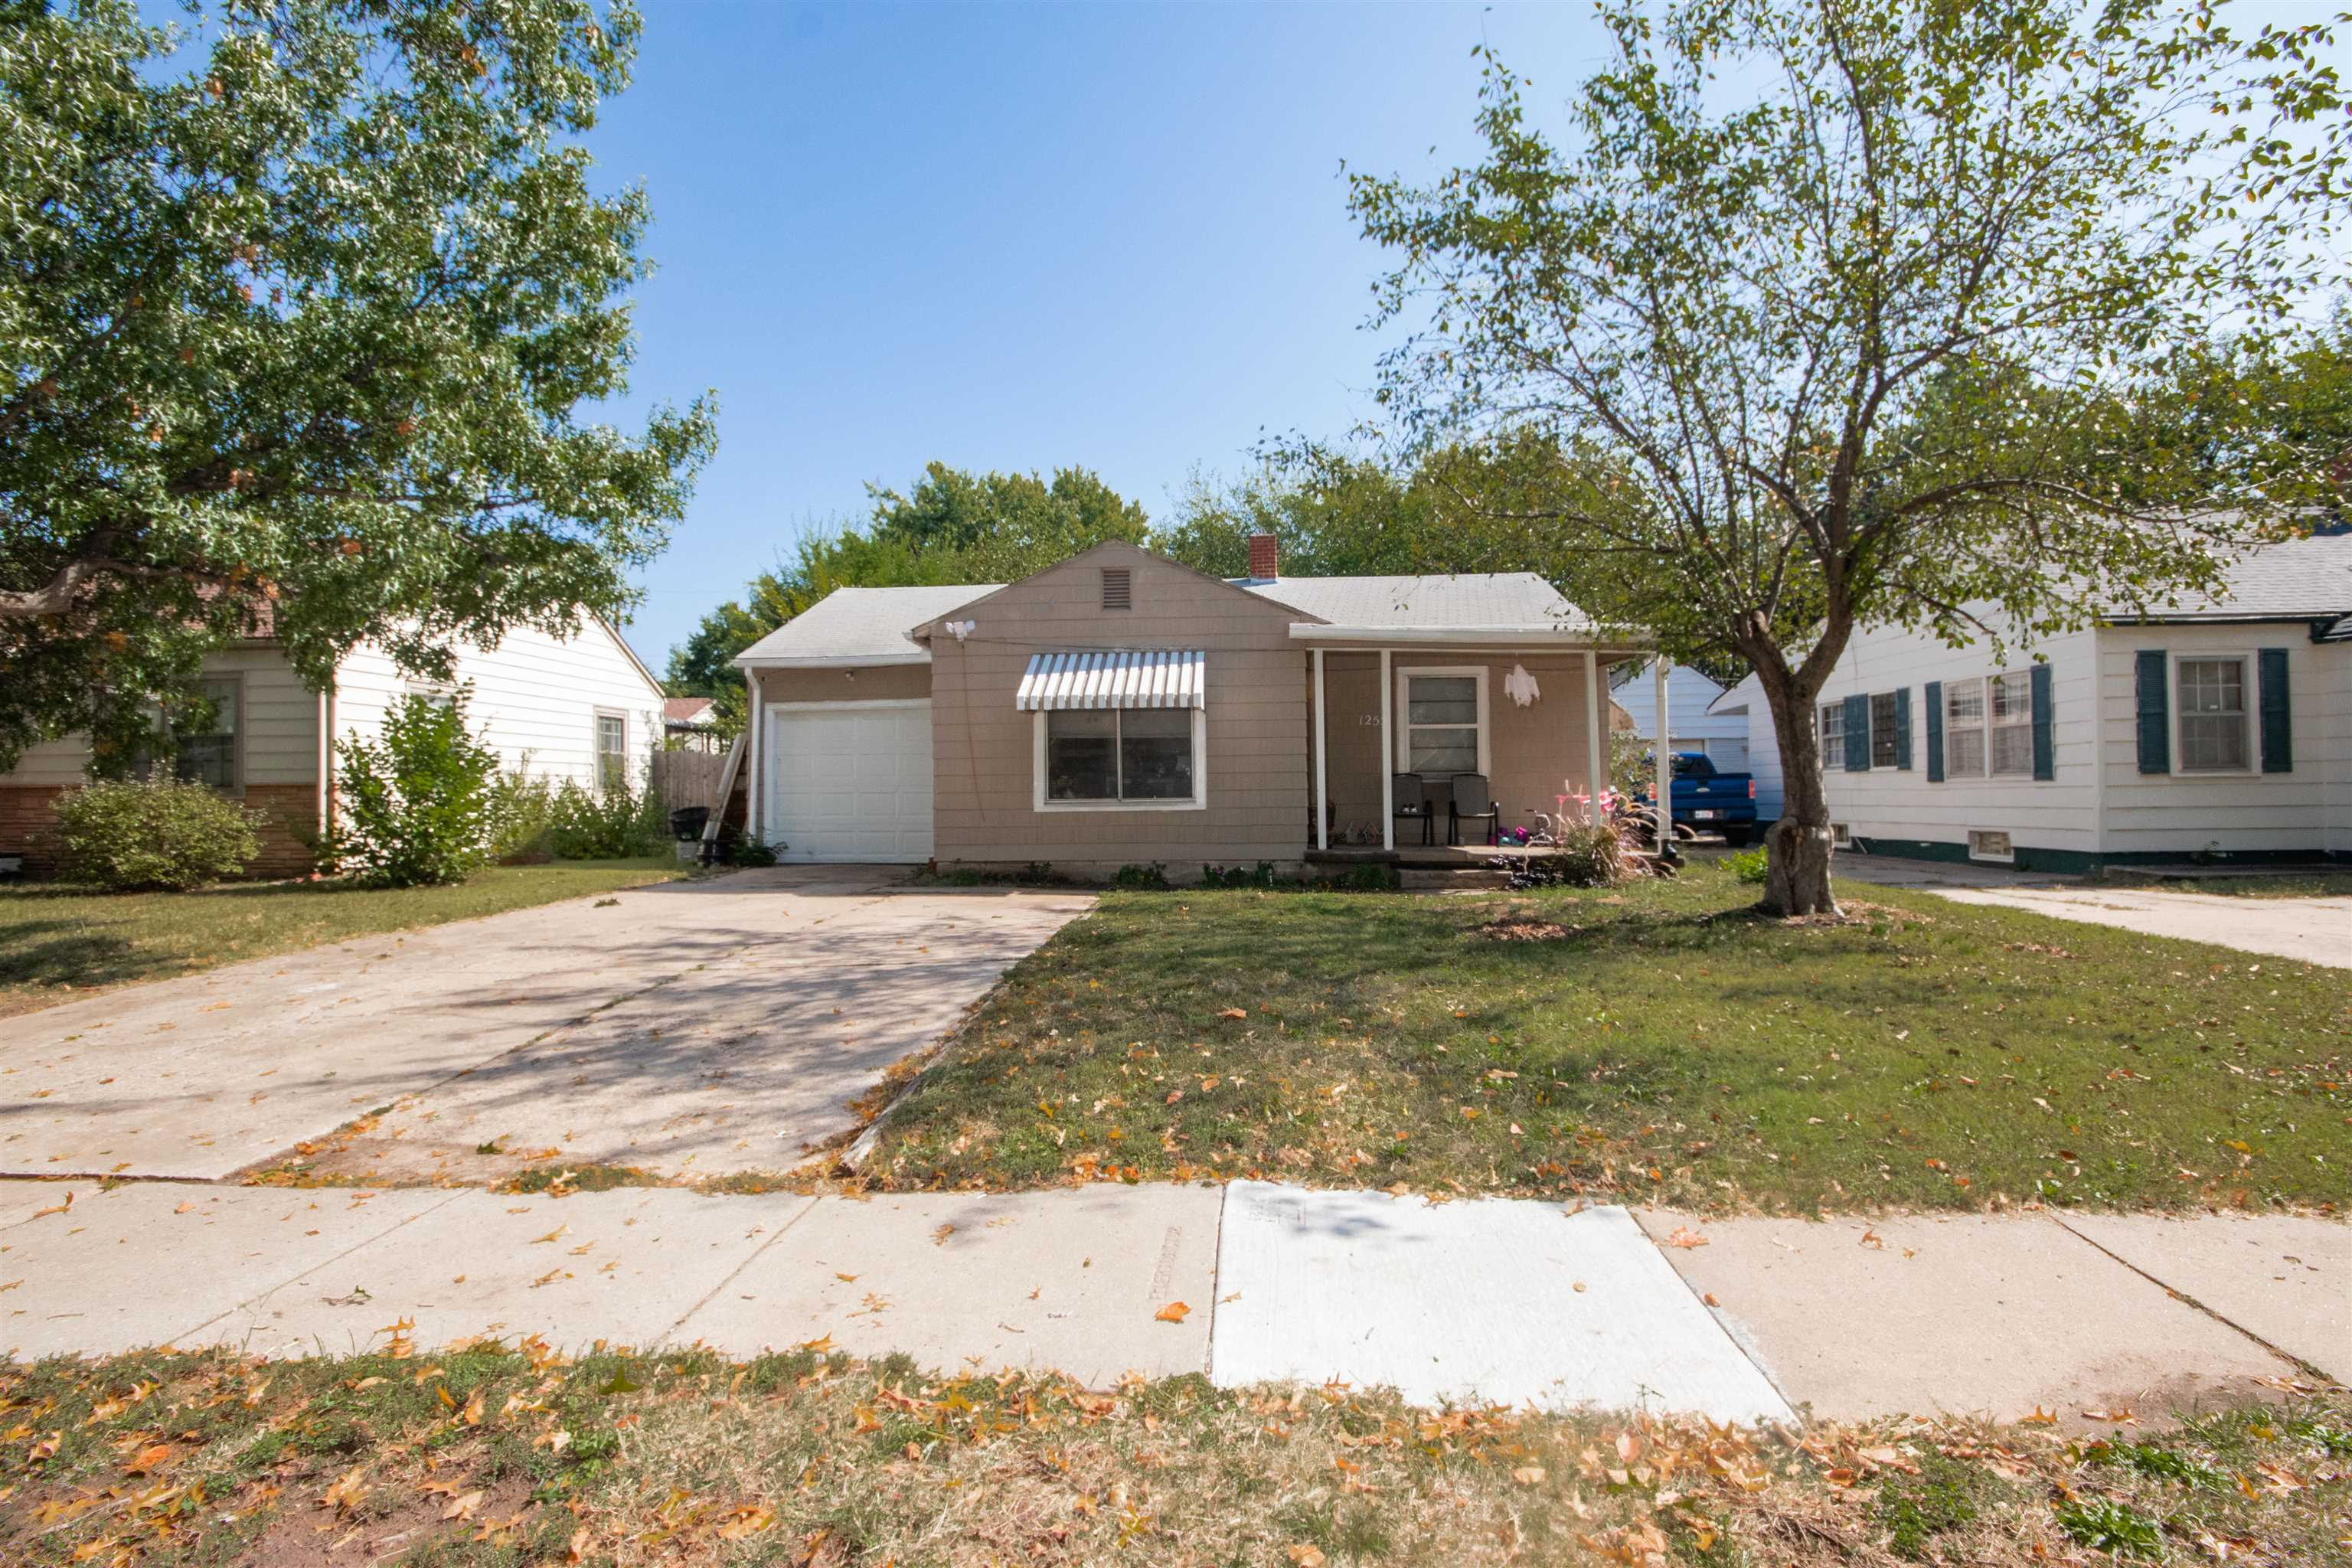 Come see this 3 bedroom, 1.5 bathroom ranch home in northeast Wichita with easy access to Wichita St